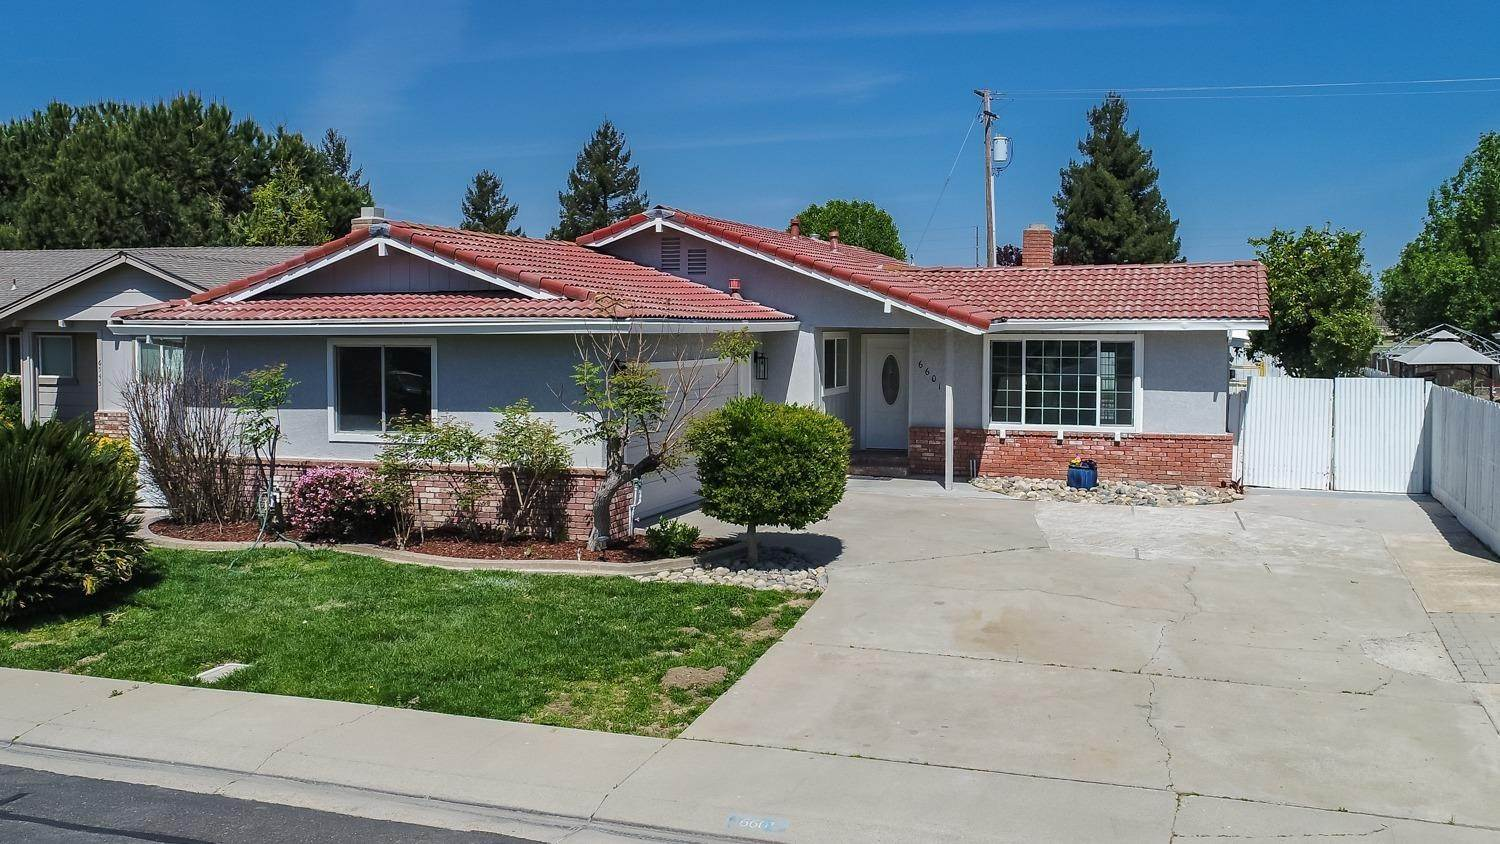 Single Family Homes for Active at 6601 Narcisco Way Hughson, California 95326 United States